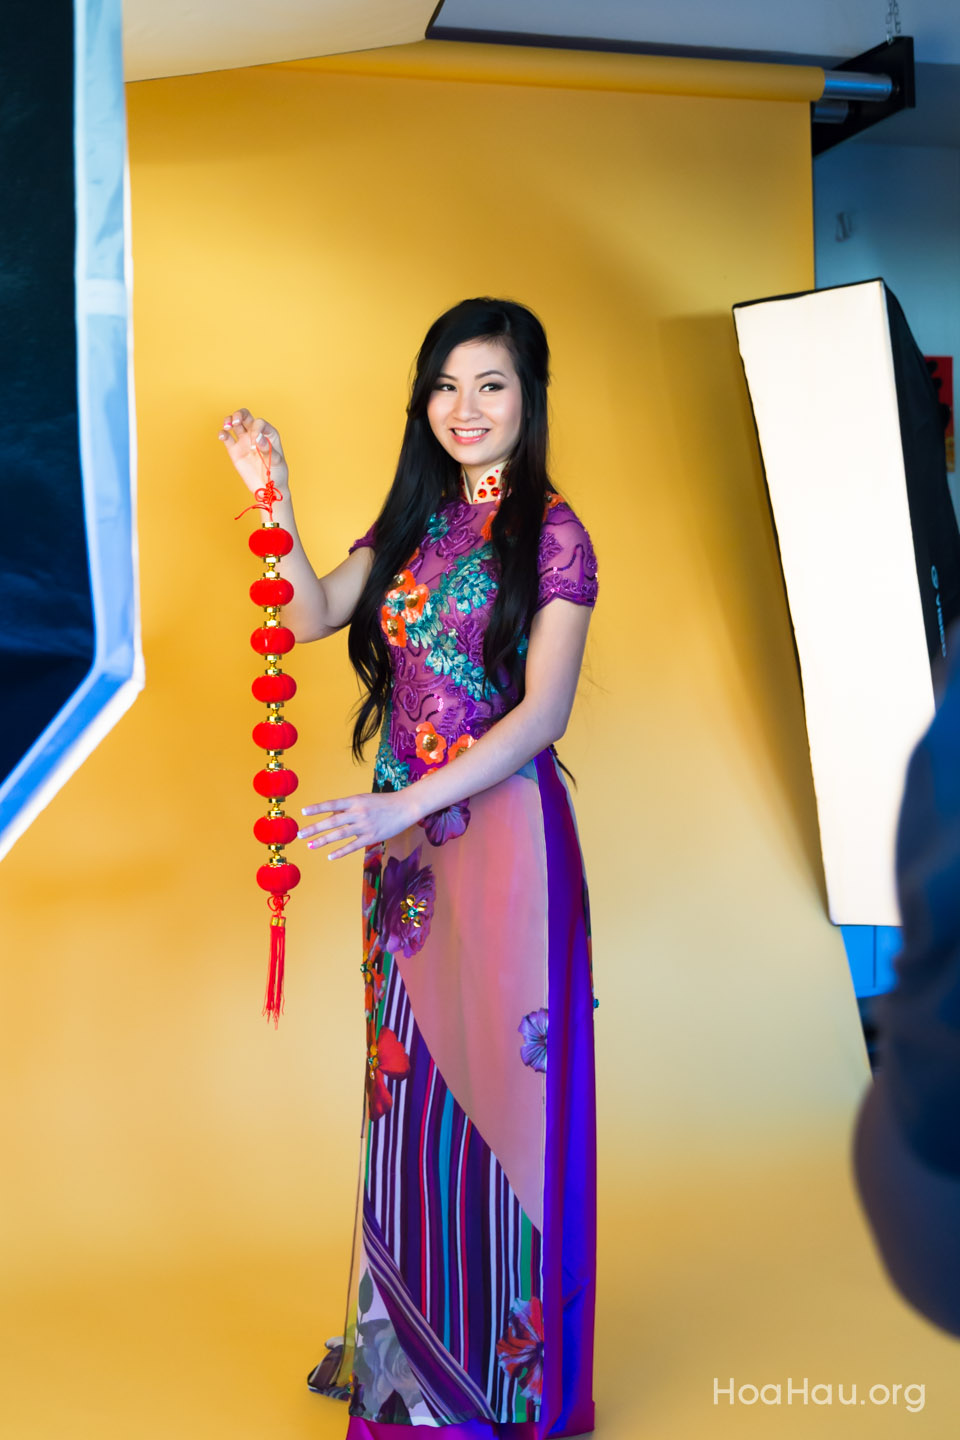 Calendar 2014 Photoshoot - Miss Vietnam of Northern California 2014 - Image 115